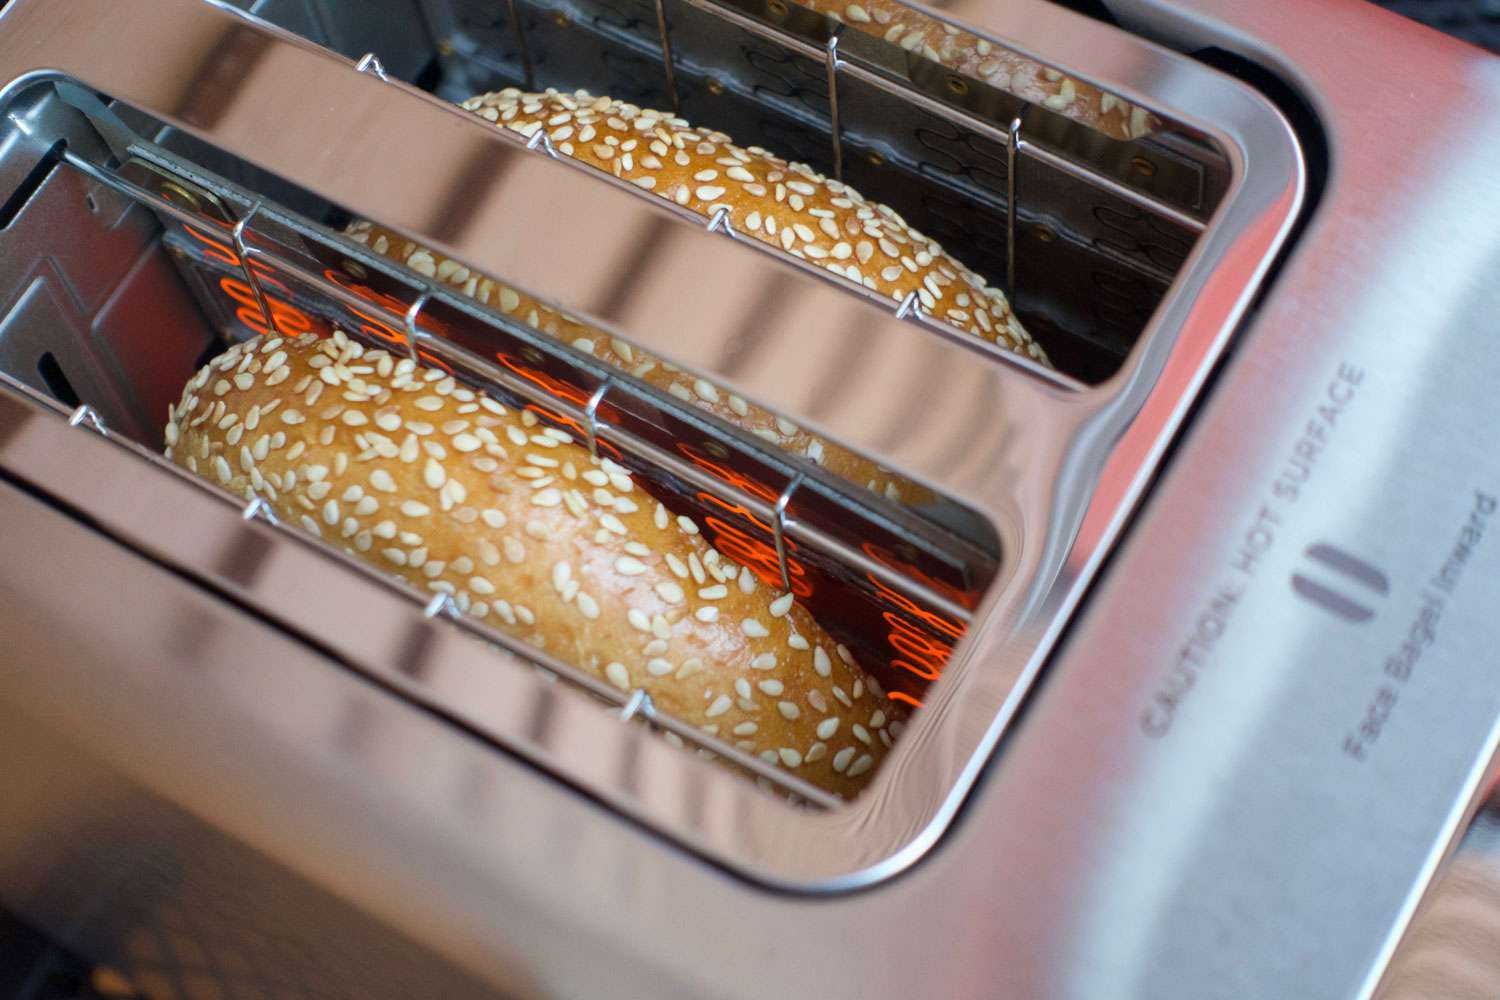 Revolution Cooking High-Speed Smart Toaster